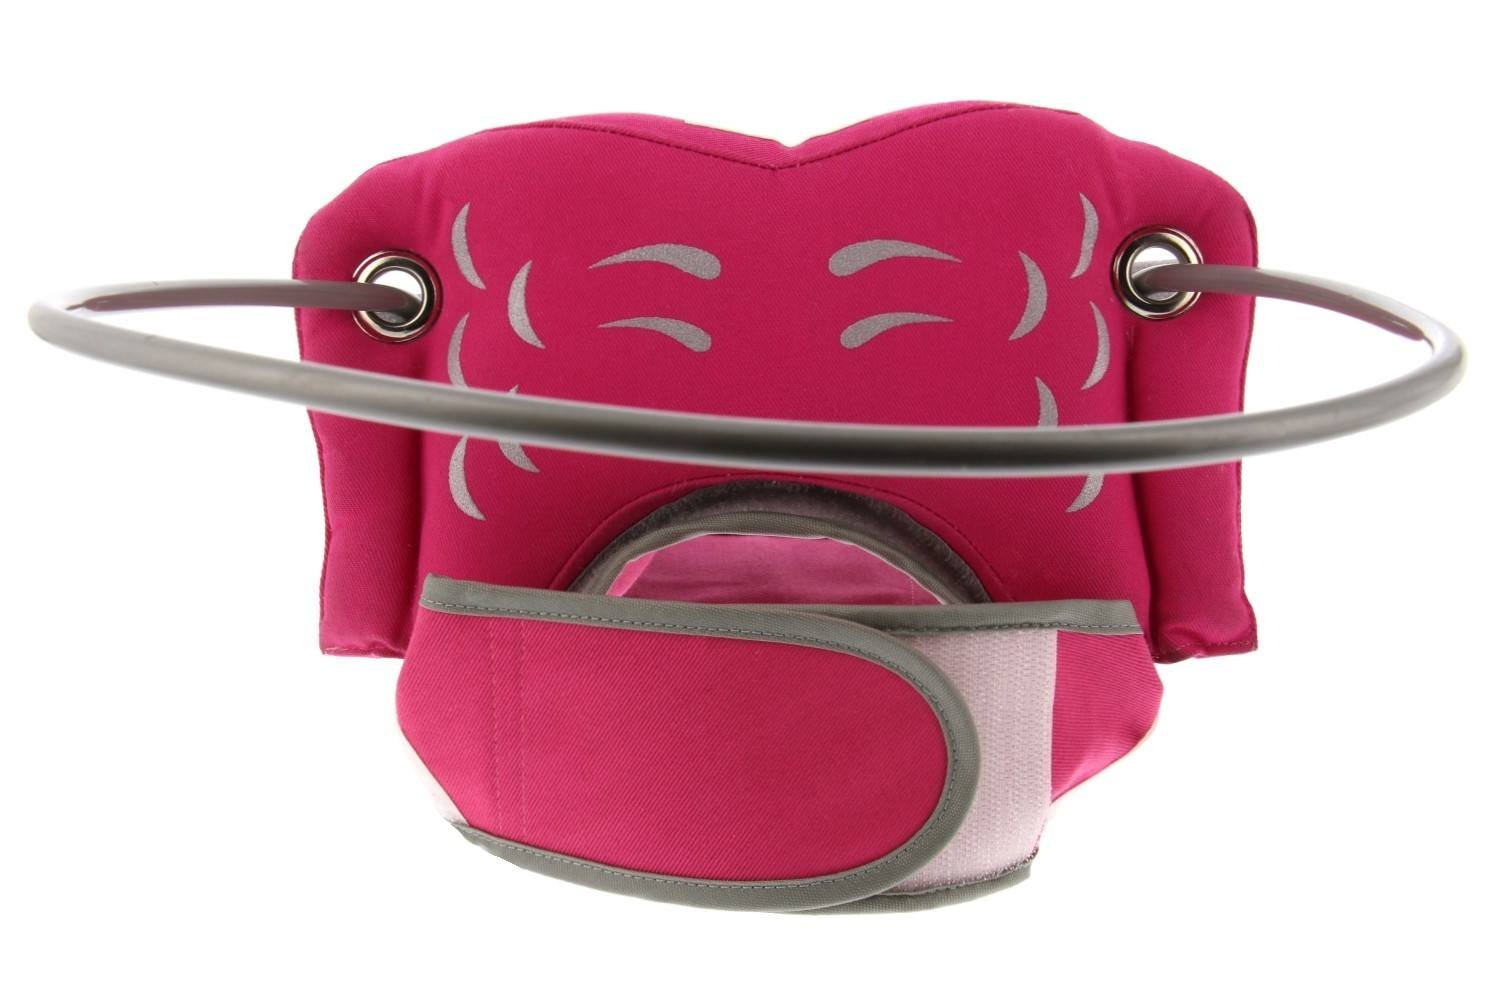 Pink Small Pink Small Muffin's Halo Blind Dog Harness Guide Device Help for Blind Dogs or Visually Impaired Pets to Avoid Accidents & Build Confidence Ideal Blind Dog Accessory to Navigate Surroundings Pink- Small